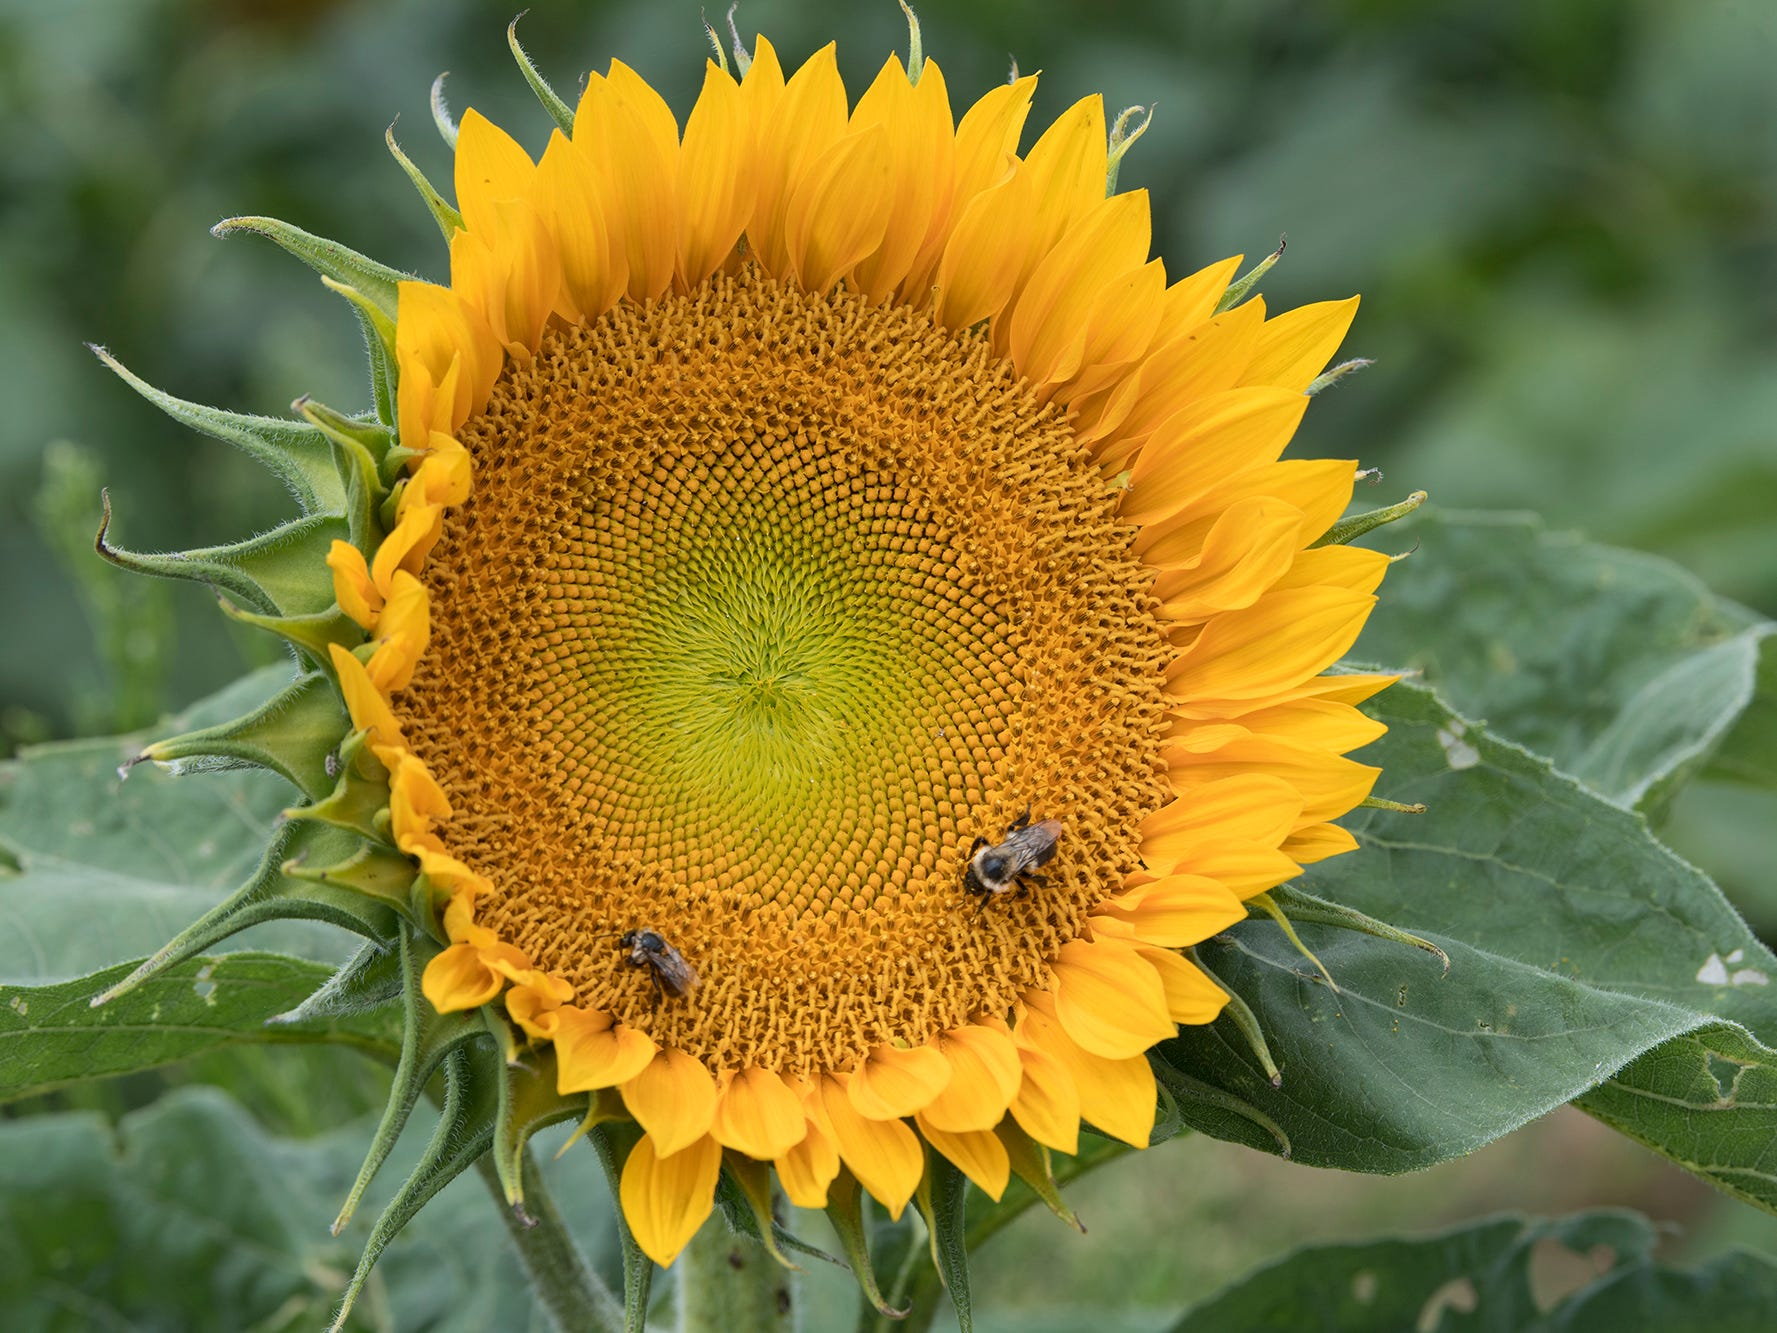 Pollinators work inside a sunflowe during the 2nd Annual Sunflower Festival at Maple Lawn Farms near New Park.